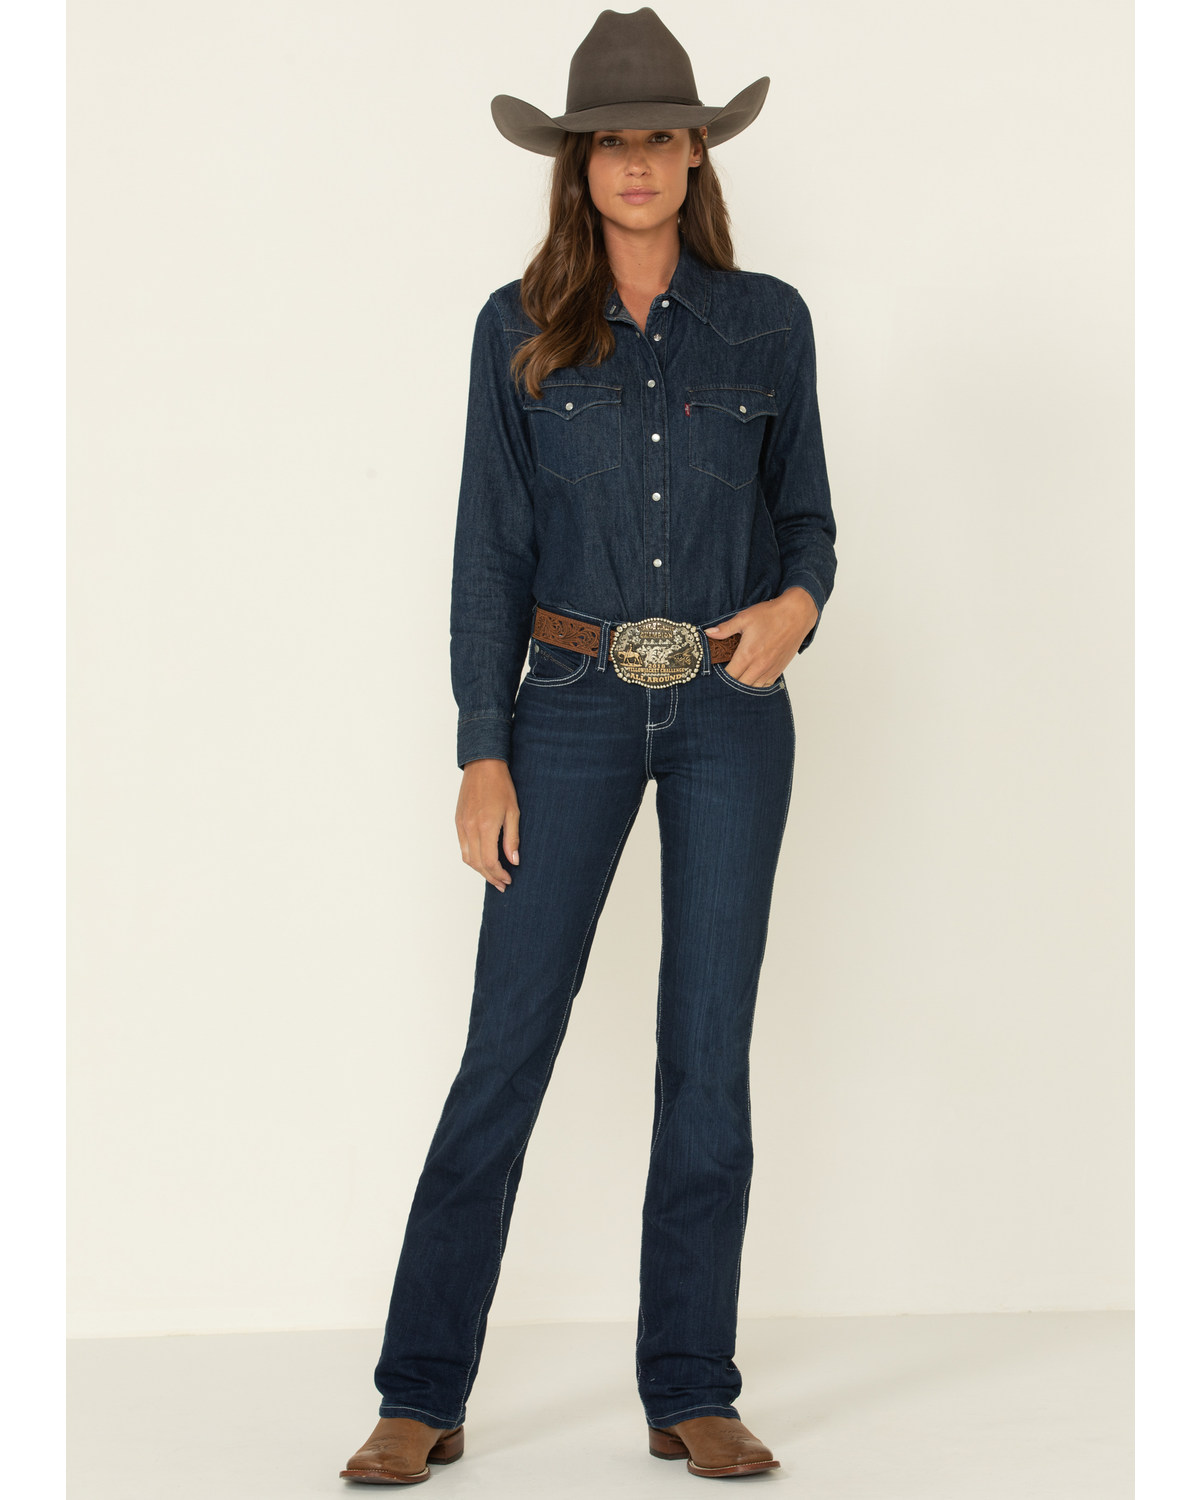 b3dee1a70ce0f8 Zoomed Image Wrangler Women's Q-Baby Booty Up Riding Jeans, Denim, ...